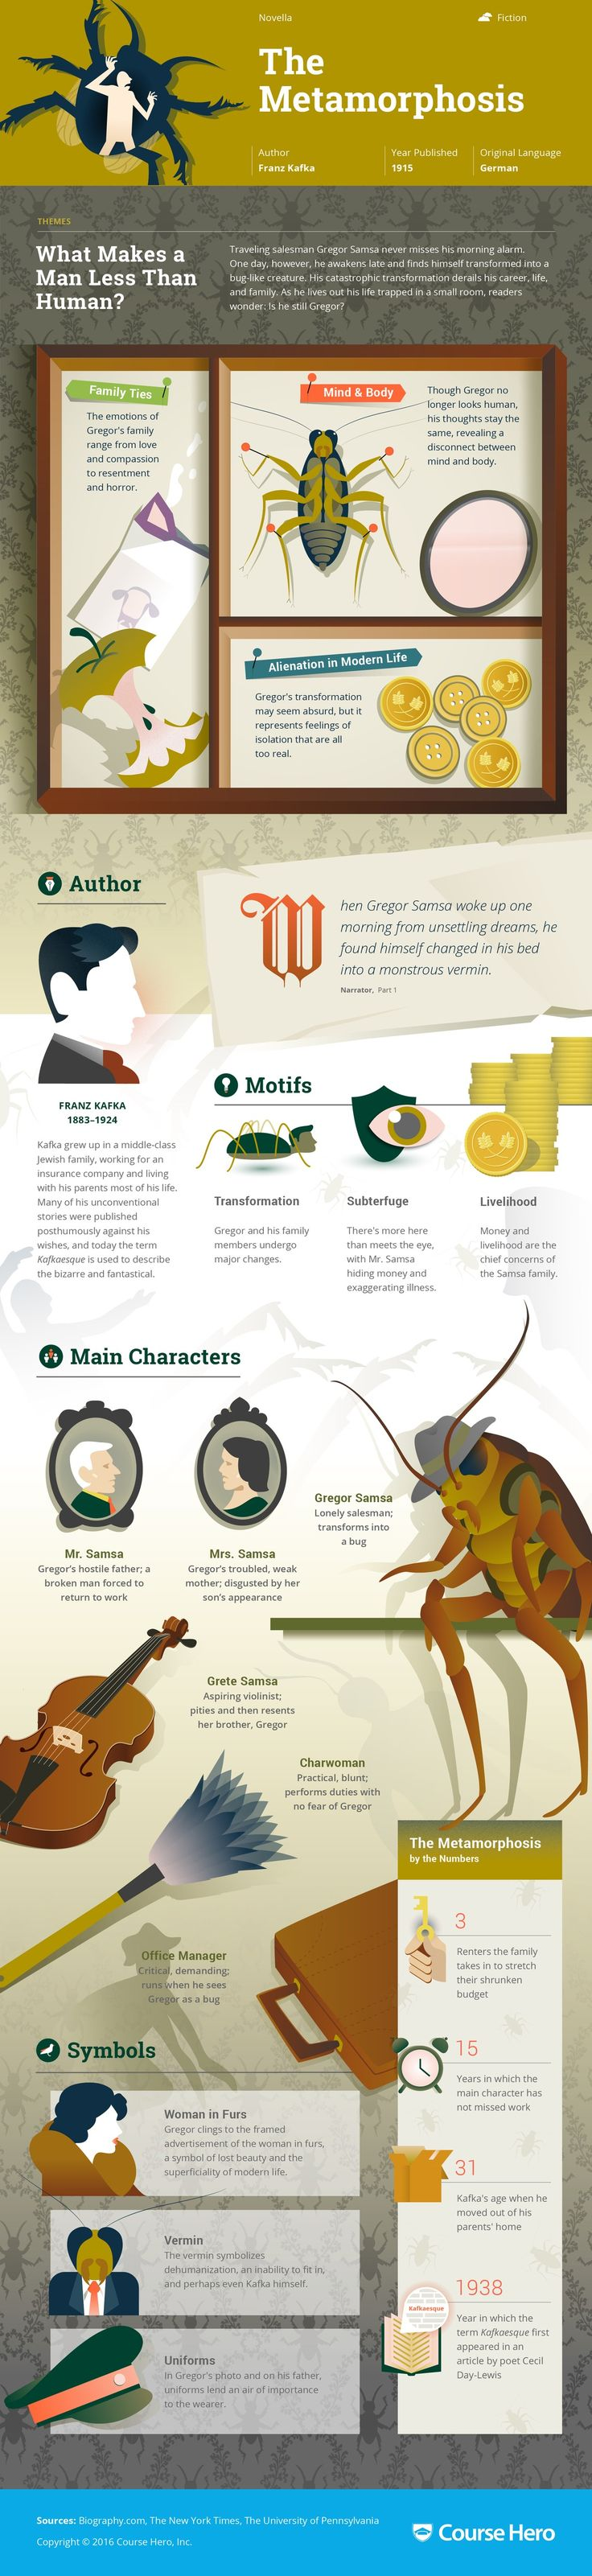 the metamorphosis essay the metamorphosis essay question best  best ideas about the metamorphosis franz kafka the metamorphosis infographic course hero